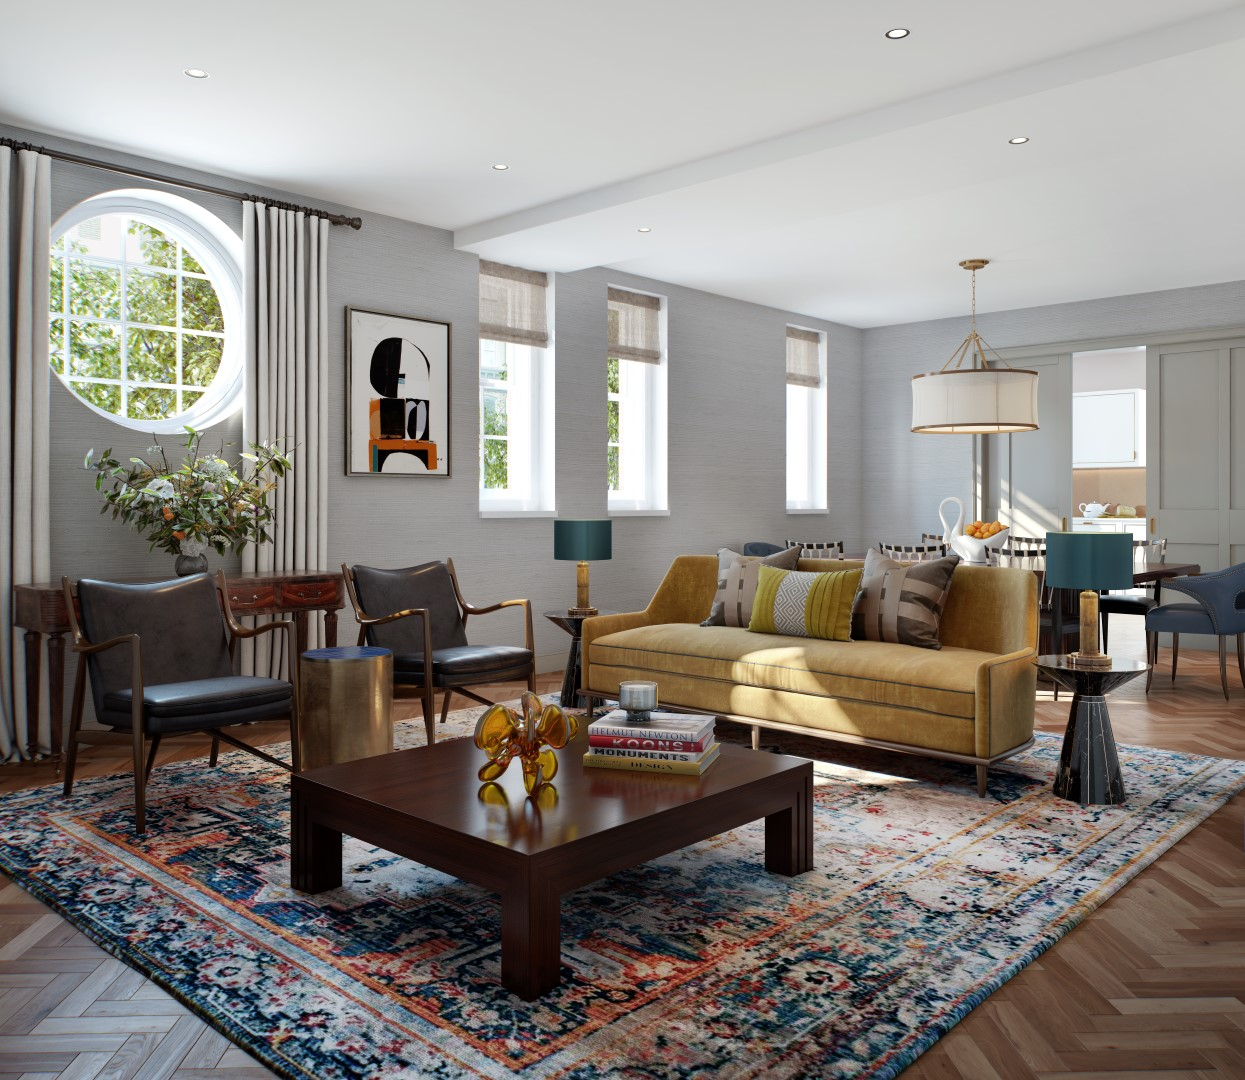 Westminster-Fire-Station-by-Alchemi-Group-and-Far-East-Orchard_Interior_Living-room.jpg